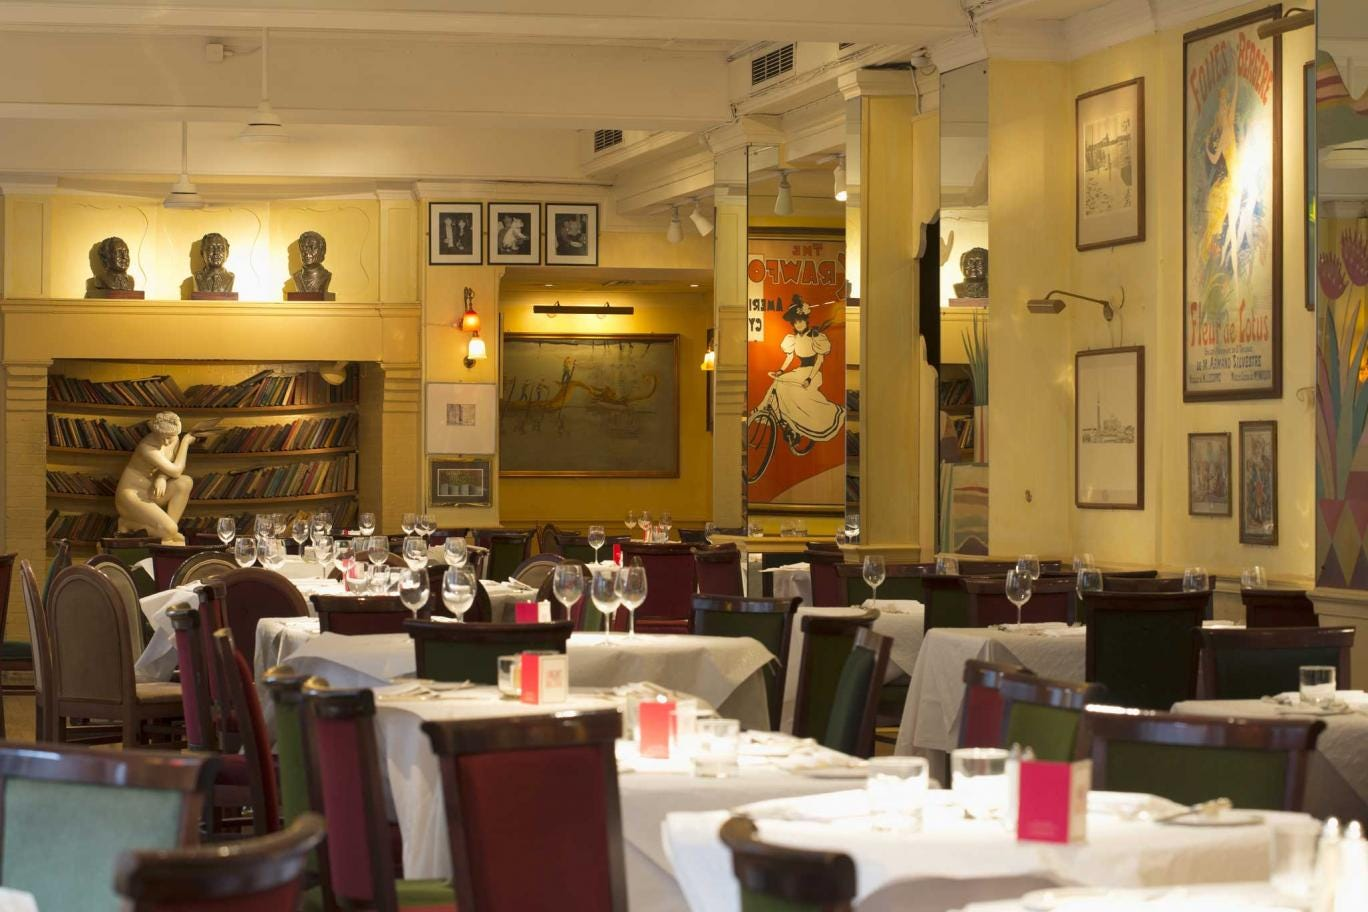 Timeless glamour: Langan's has been discreetly updated but is still pleasantly familiar